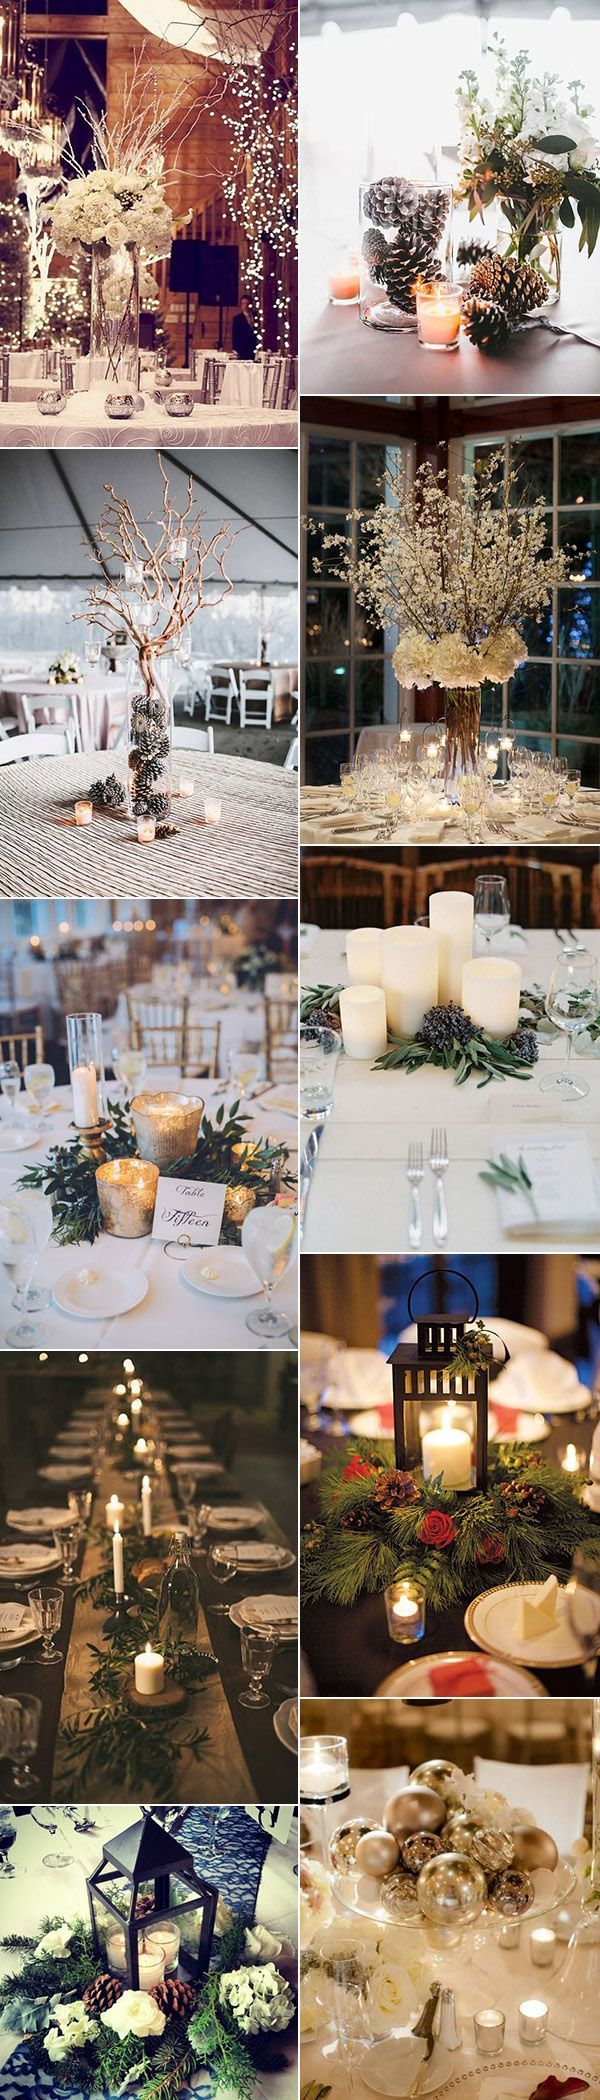 50 Brilliant Winter Wedding Ideas Youll Love Pinterest Winter